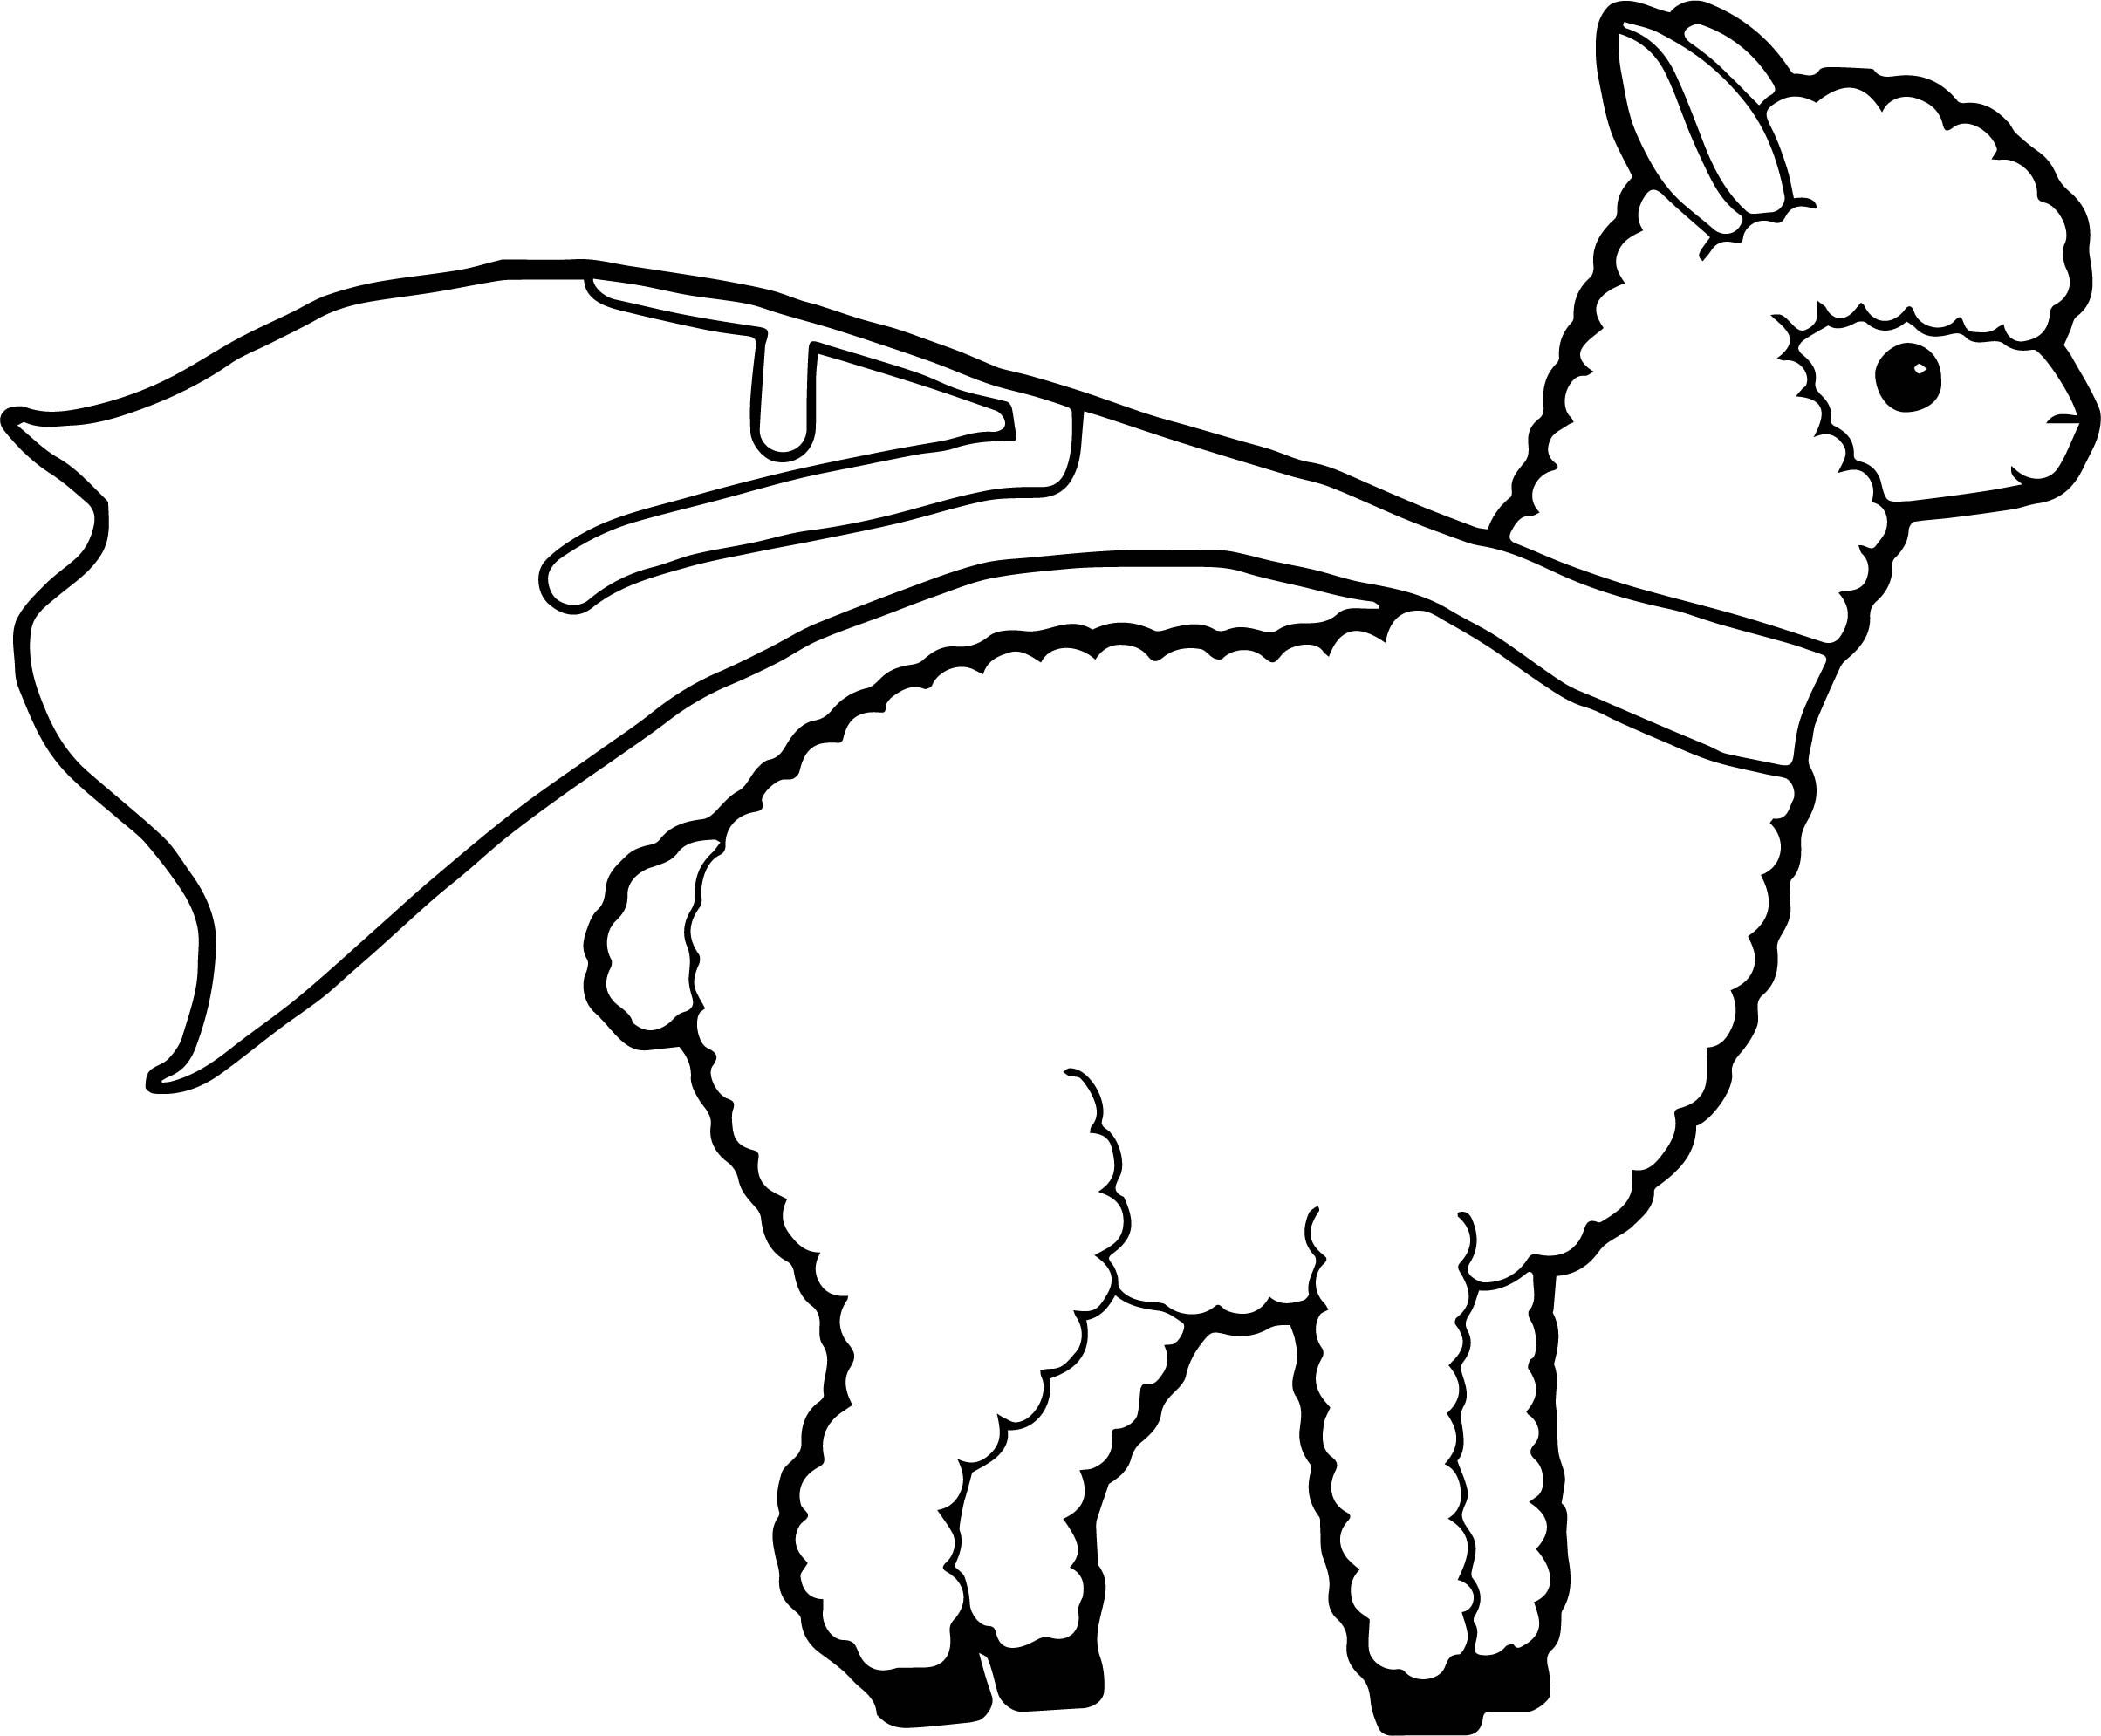 Superman Alpaca Coloring Page Wecoloringpage Love Coloring Pages Animal Coloring Pages Llama Drawing